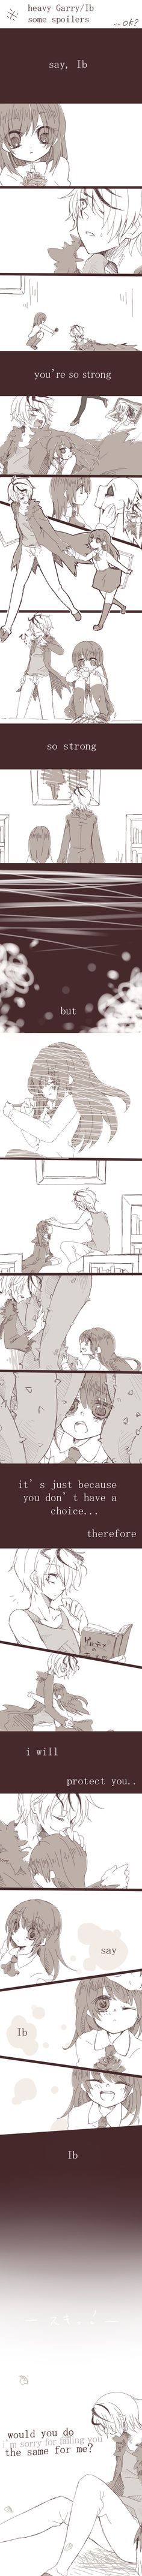 ((I know this isn't anime, its a game, but the art style is anime soo))   Garry's feelings towards Ib - comic